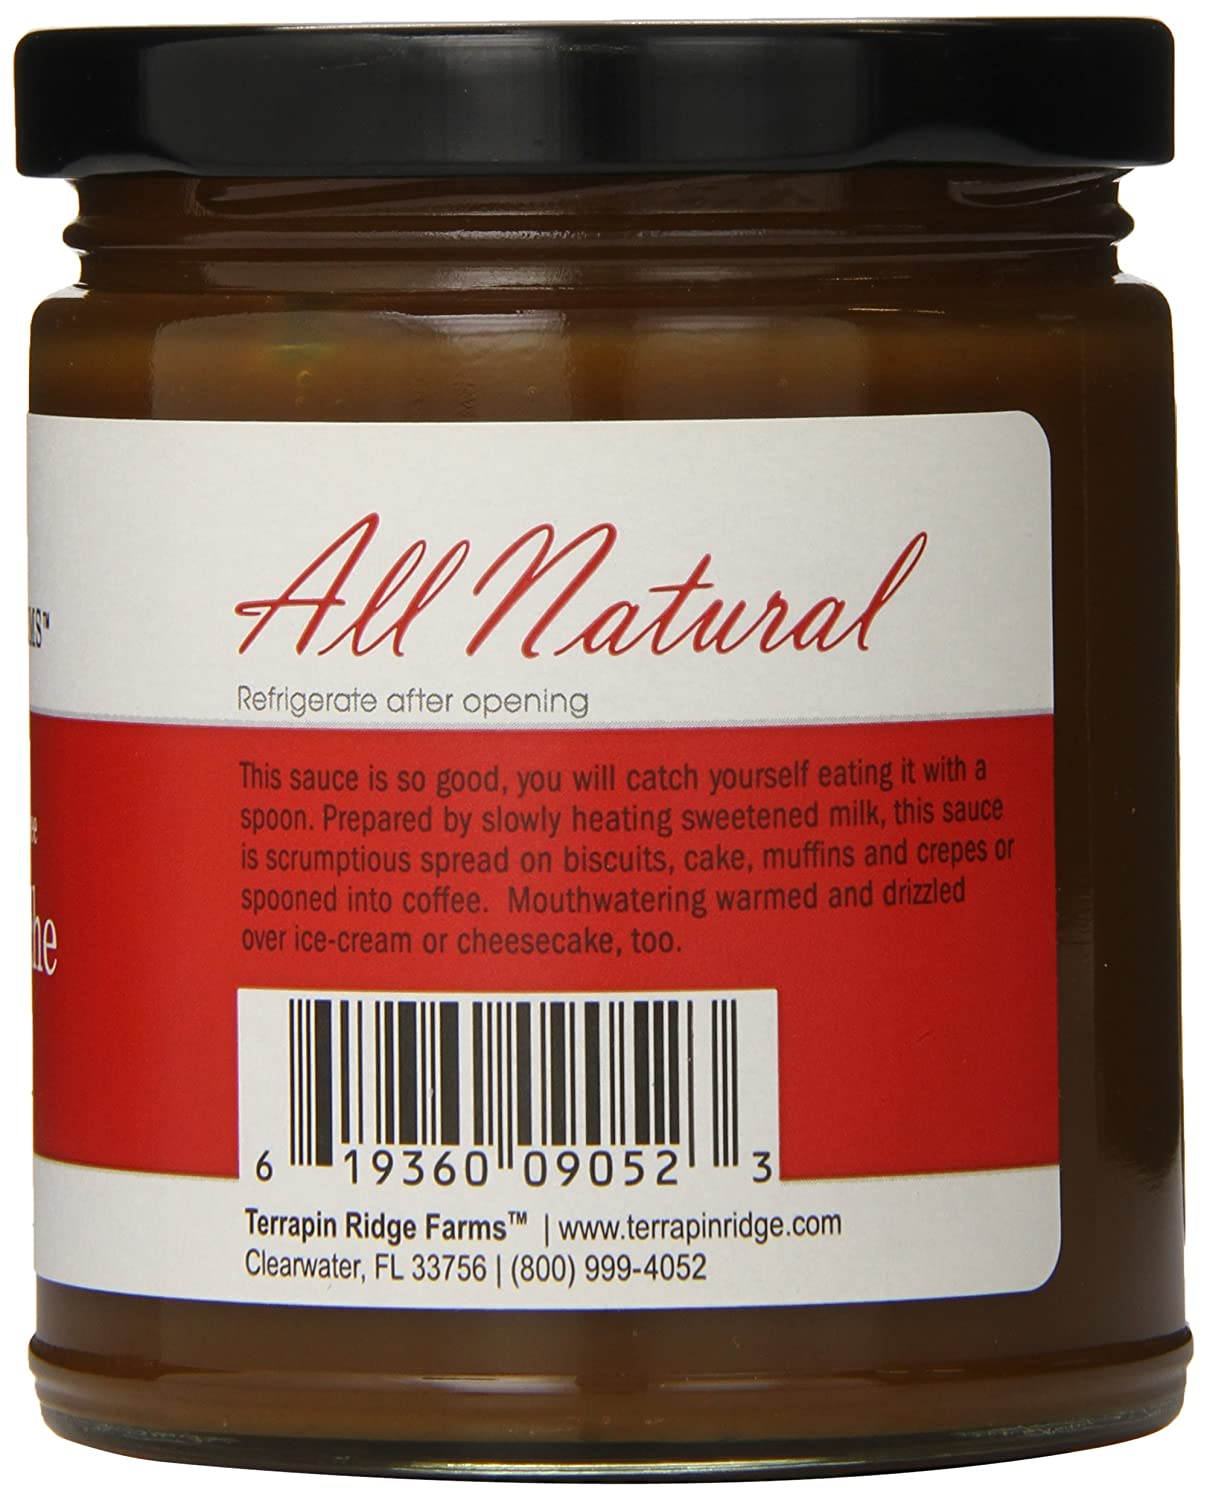 Amazon.com : Terrapin Ridge Farms Dessert Topping, Dulce de Leche, 11 Ounce : Grocery & Gourmet Food